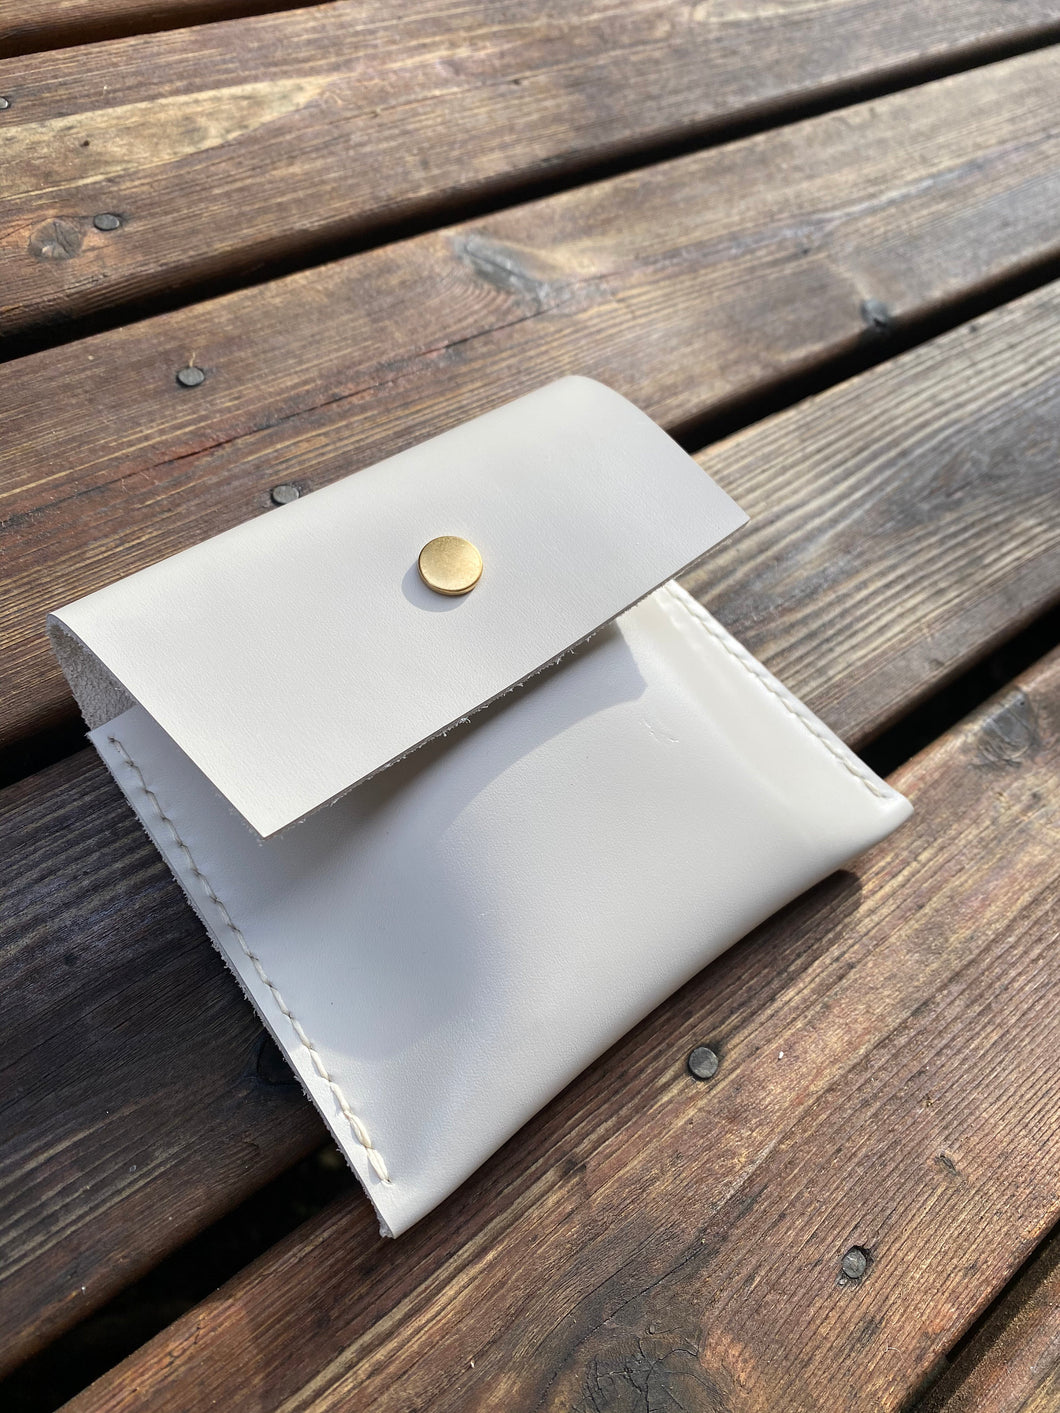 The White Leather Playing Card Case